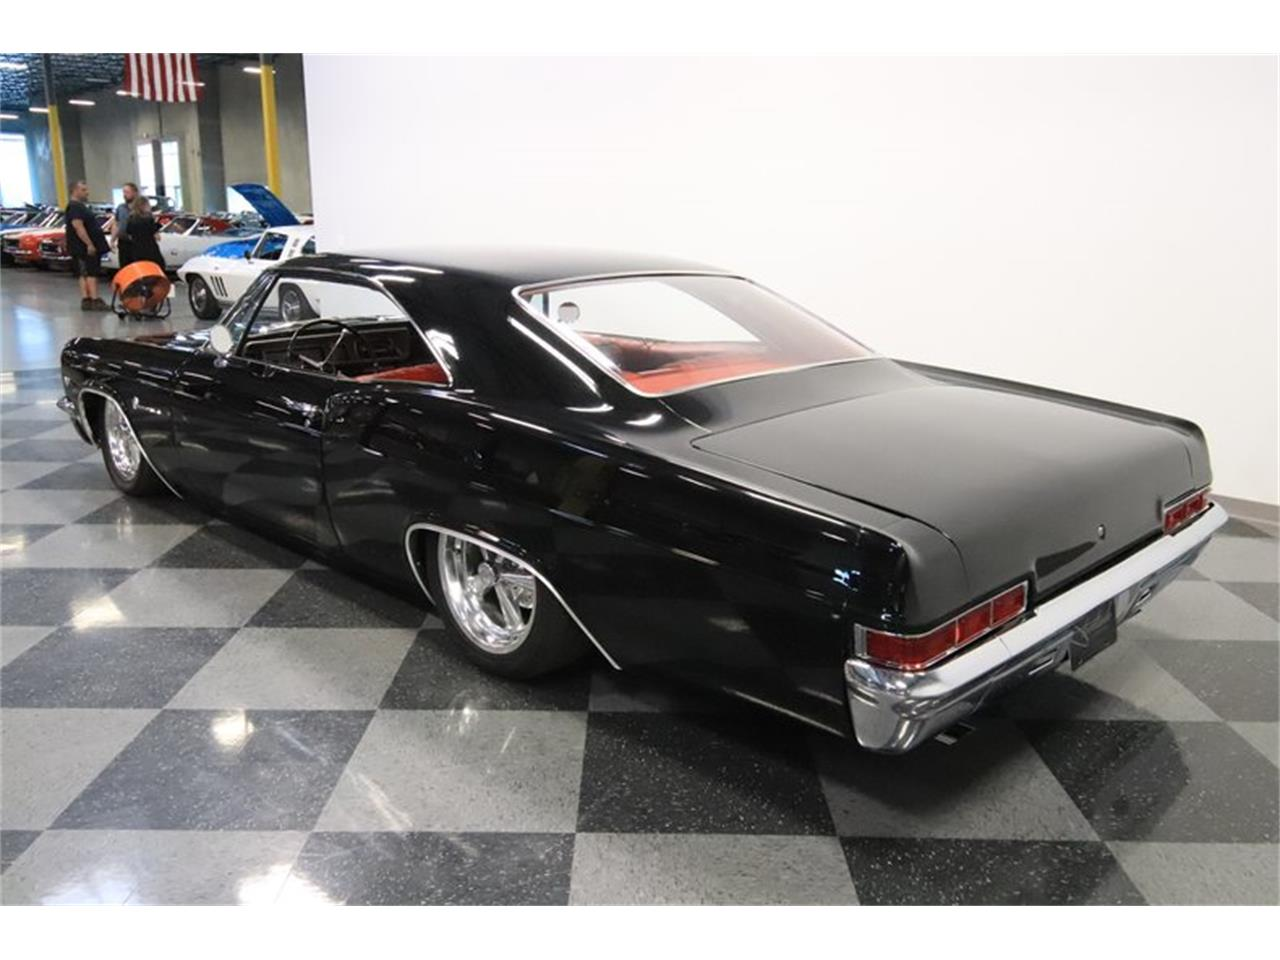 Large Picture of Classic 1966 Chevrolet Impala located in Mesa Arizona Offered by Streetside Classics - Phoenix - Q2EF